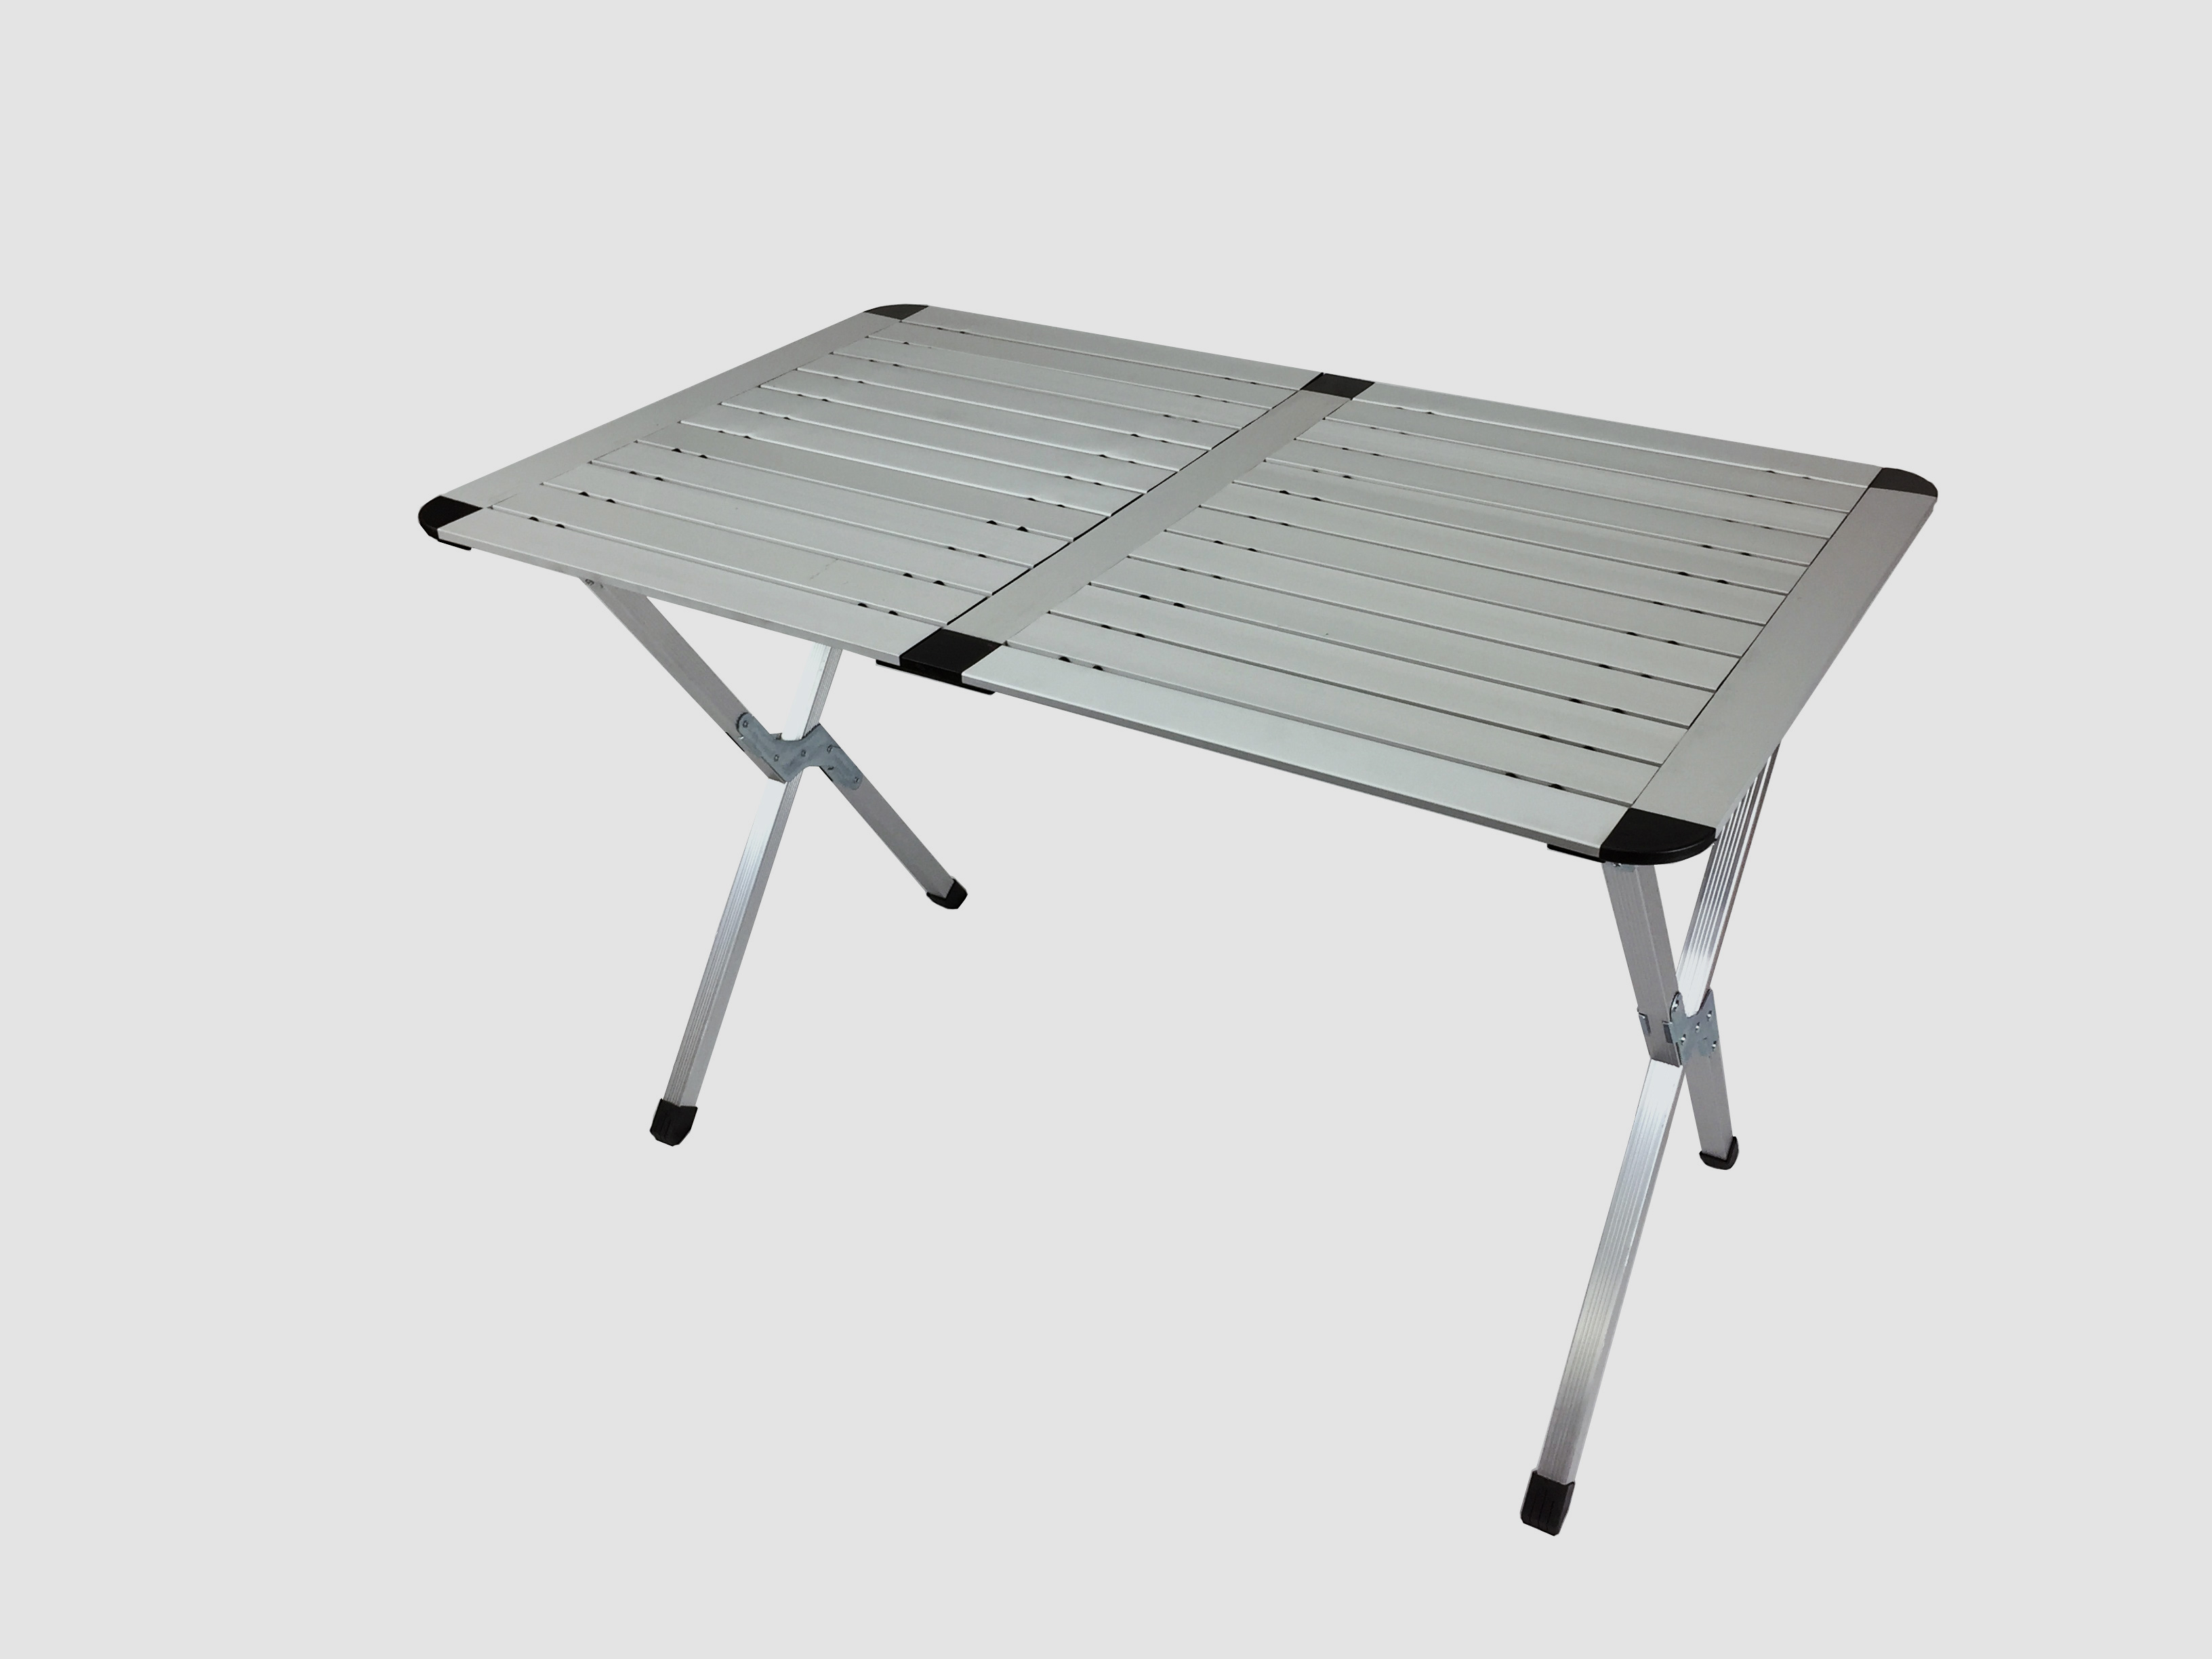 Large Roll Up Top Aluminum Table Camp Picnic Portable Carry Bag Silver 4  Person